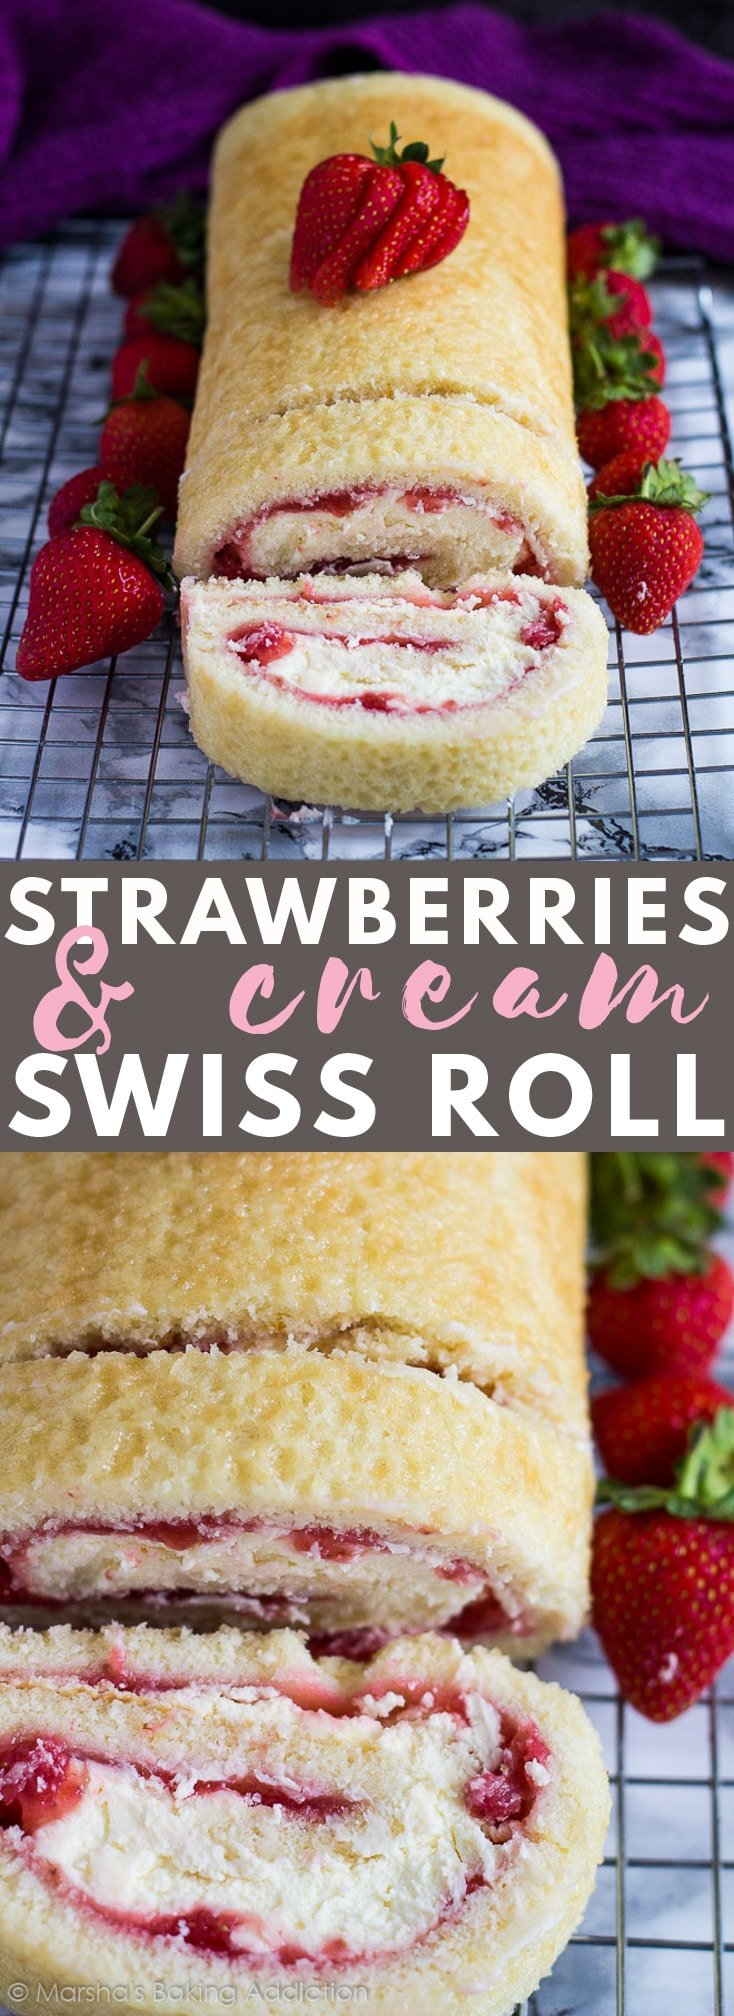 Strawberries and Cream Swiss Roll – Deliciously moist and fluffy vanilla cake filled with a layer of fresh strawberry sauce, and a layer of homemade whipped cream. The perfect summer dessert!